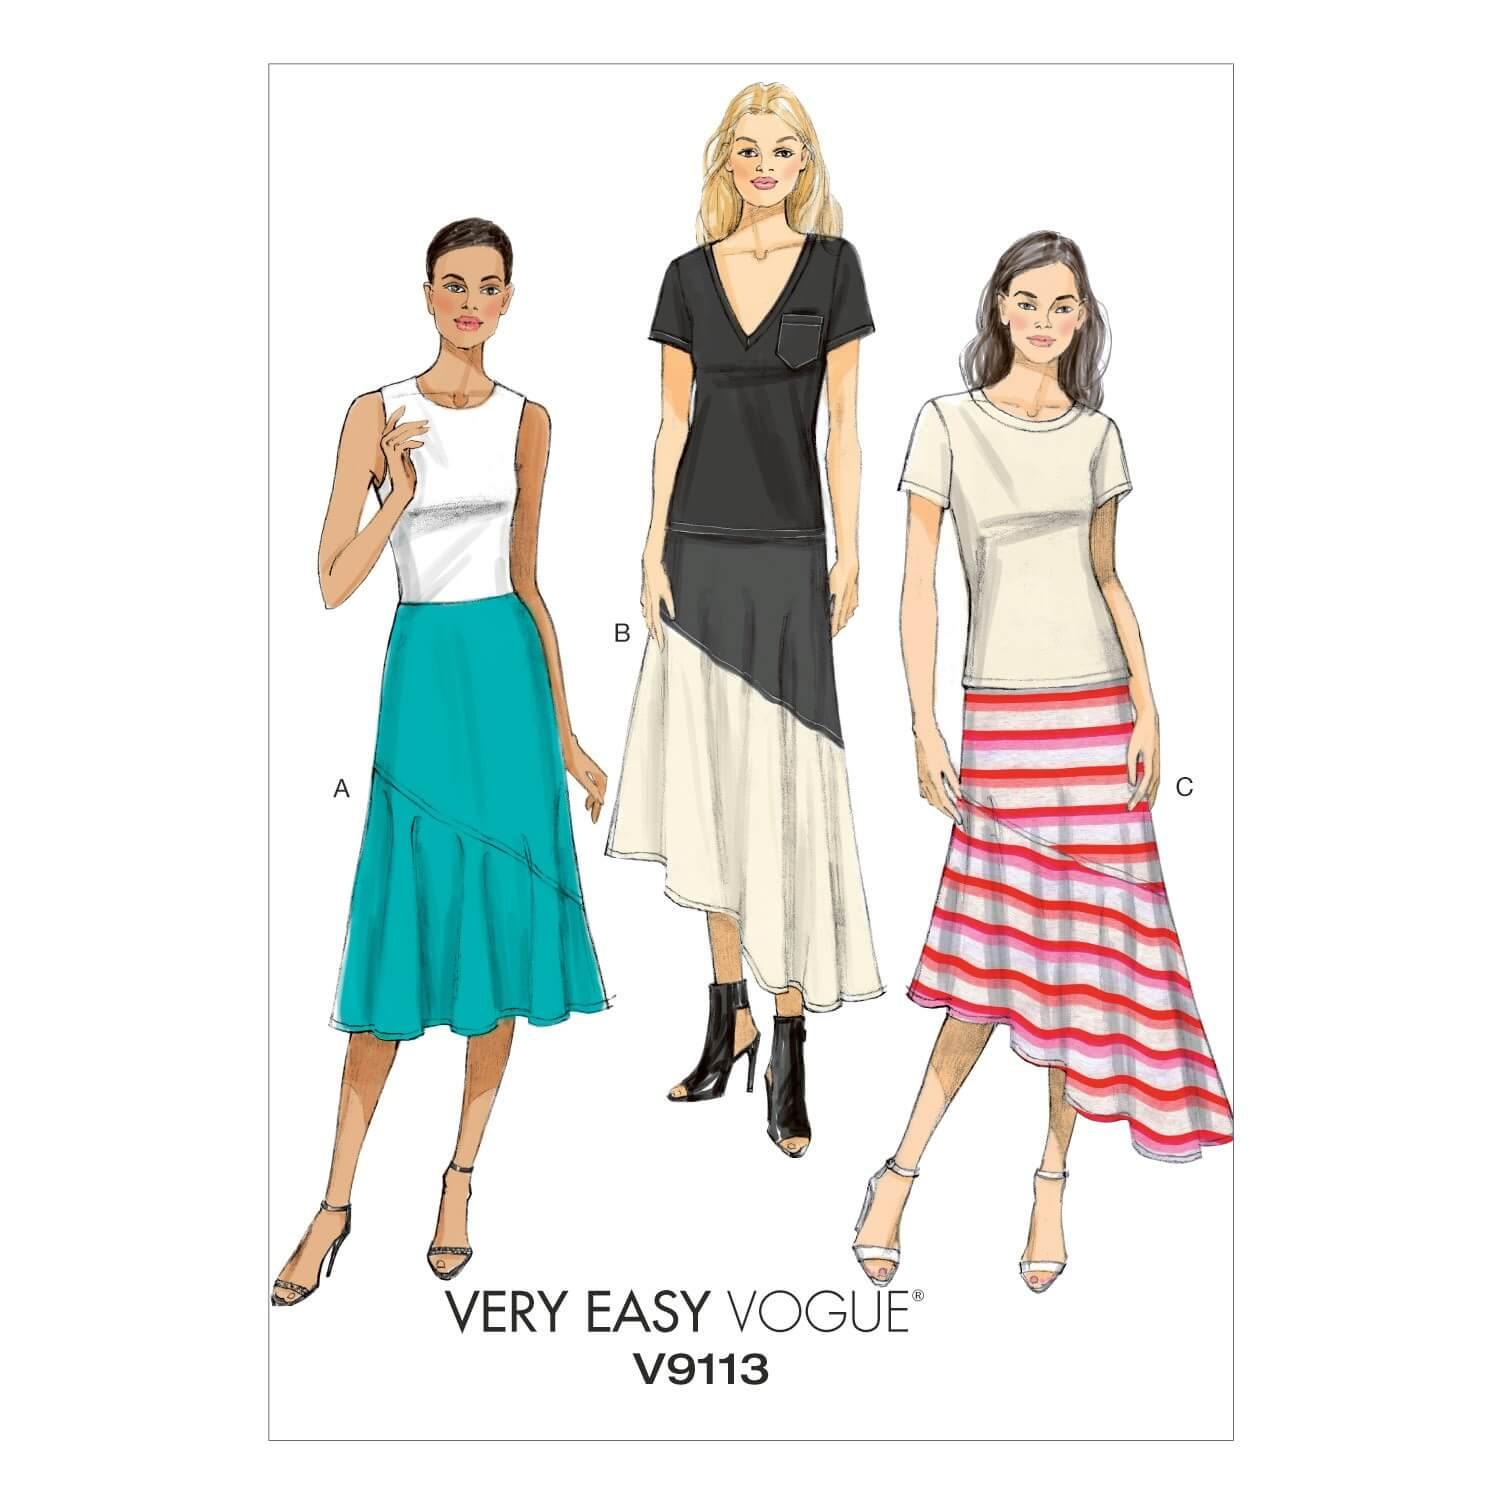 Vogue Sewing Pattern V9113 Women's Close Fitting Long Skirt